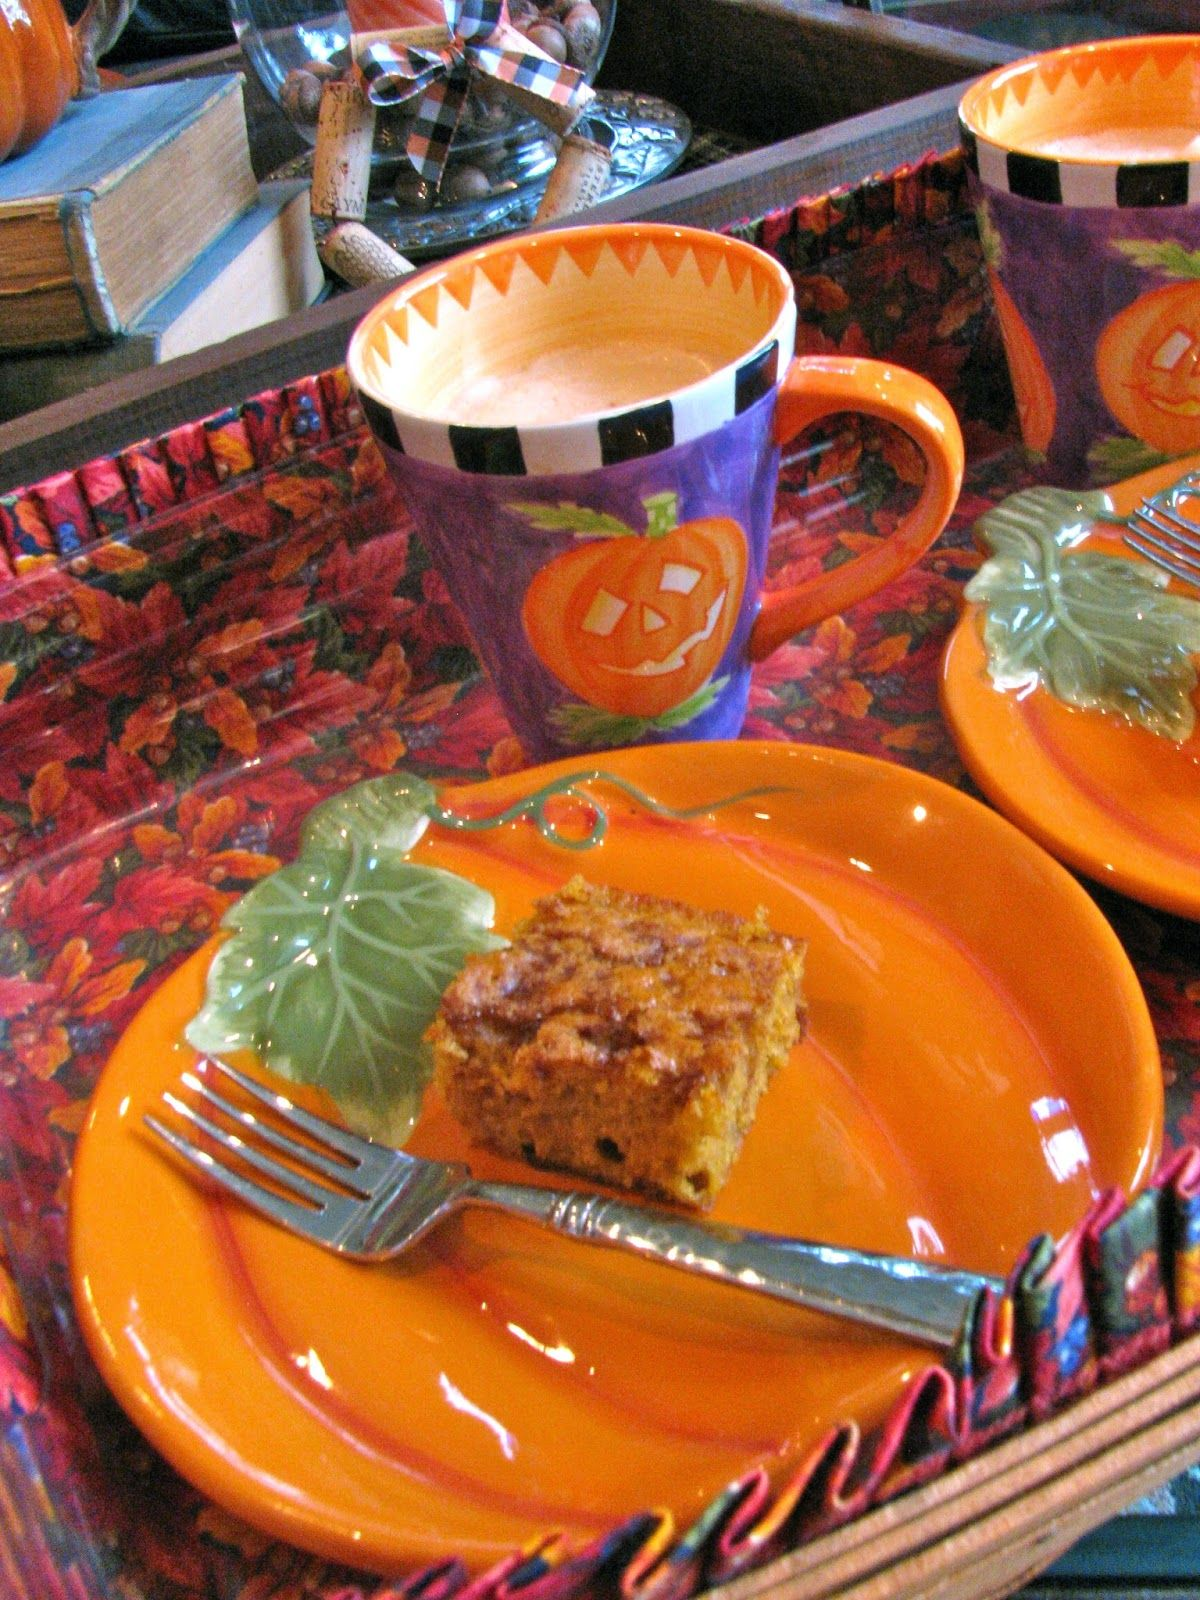 Rita's Recipes: Pumpkin Maple Coffee Cake